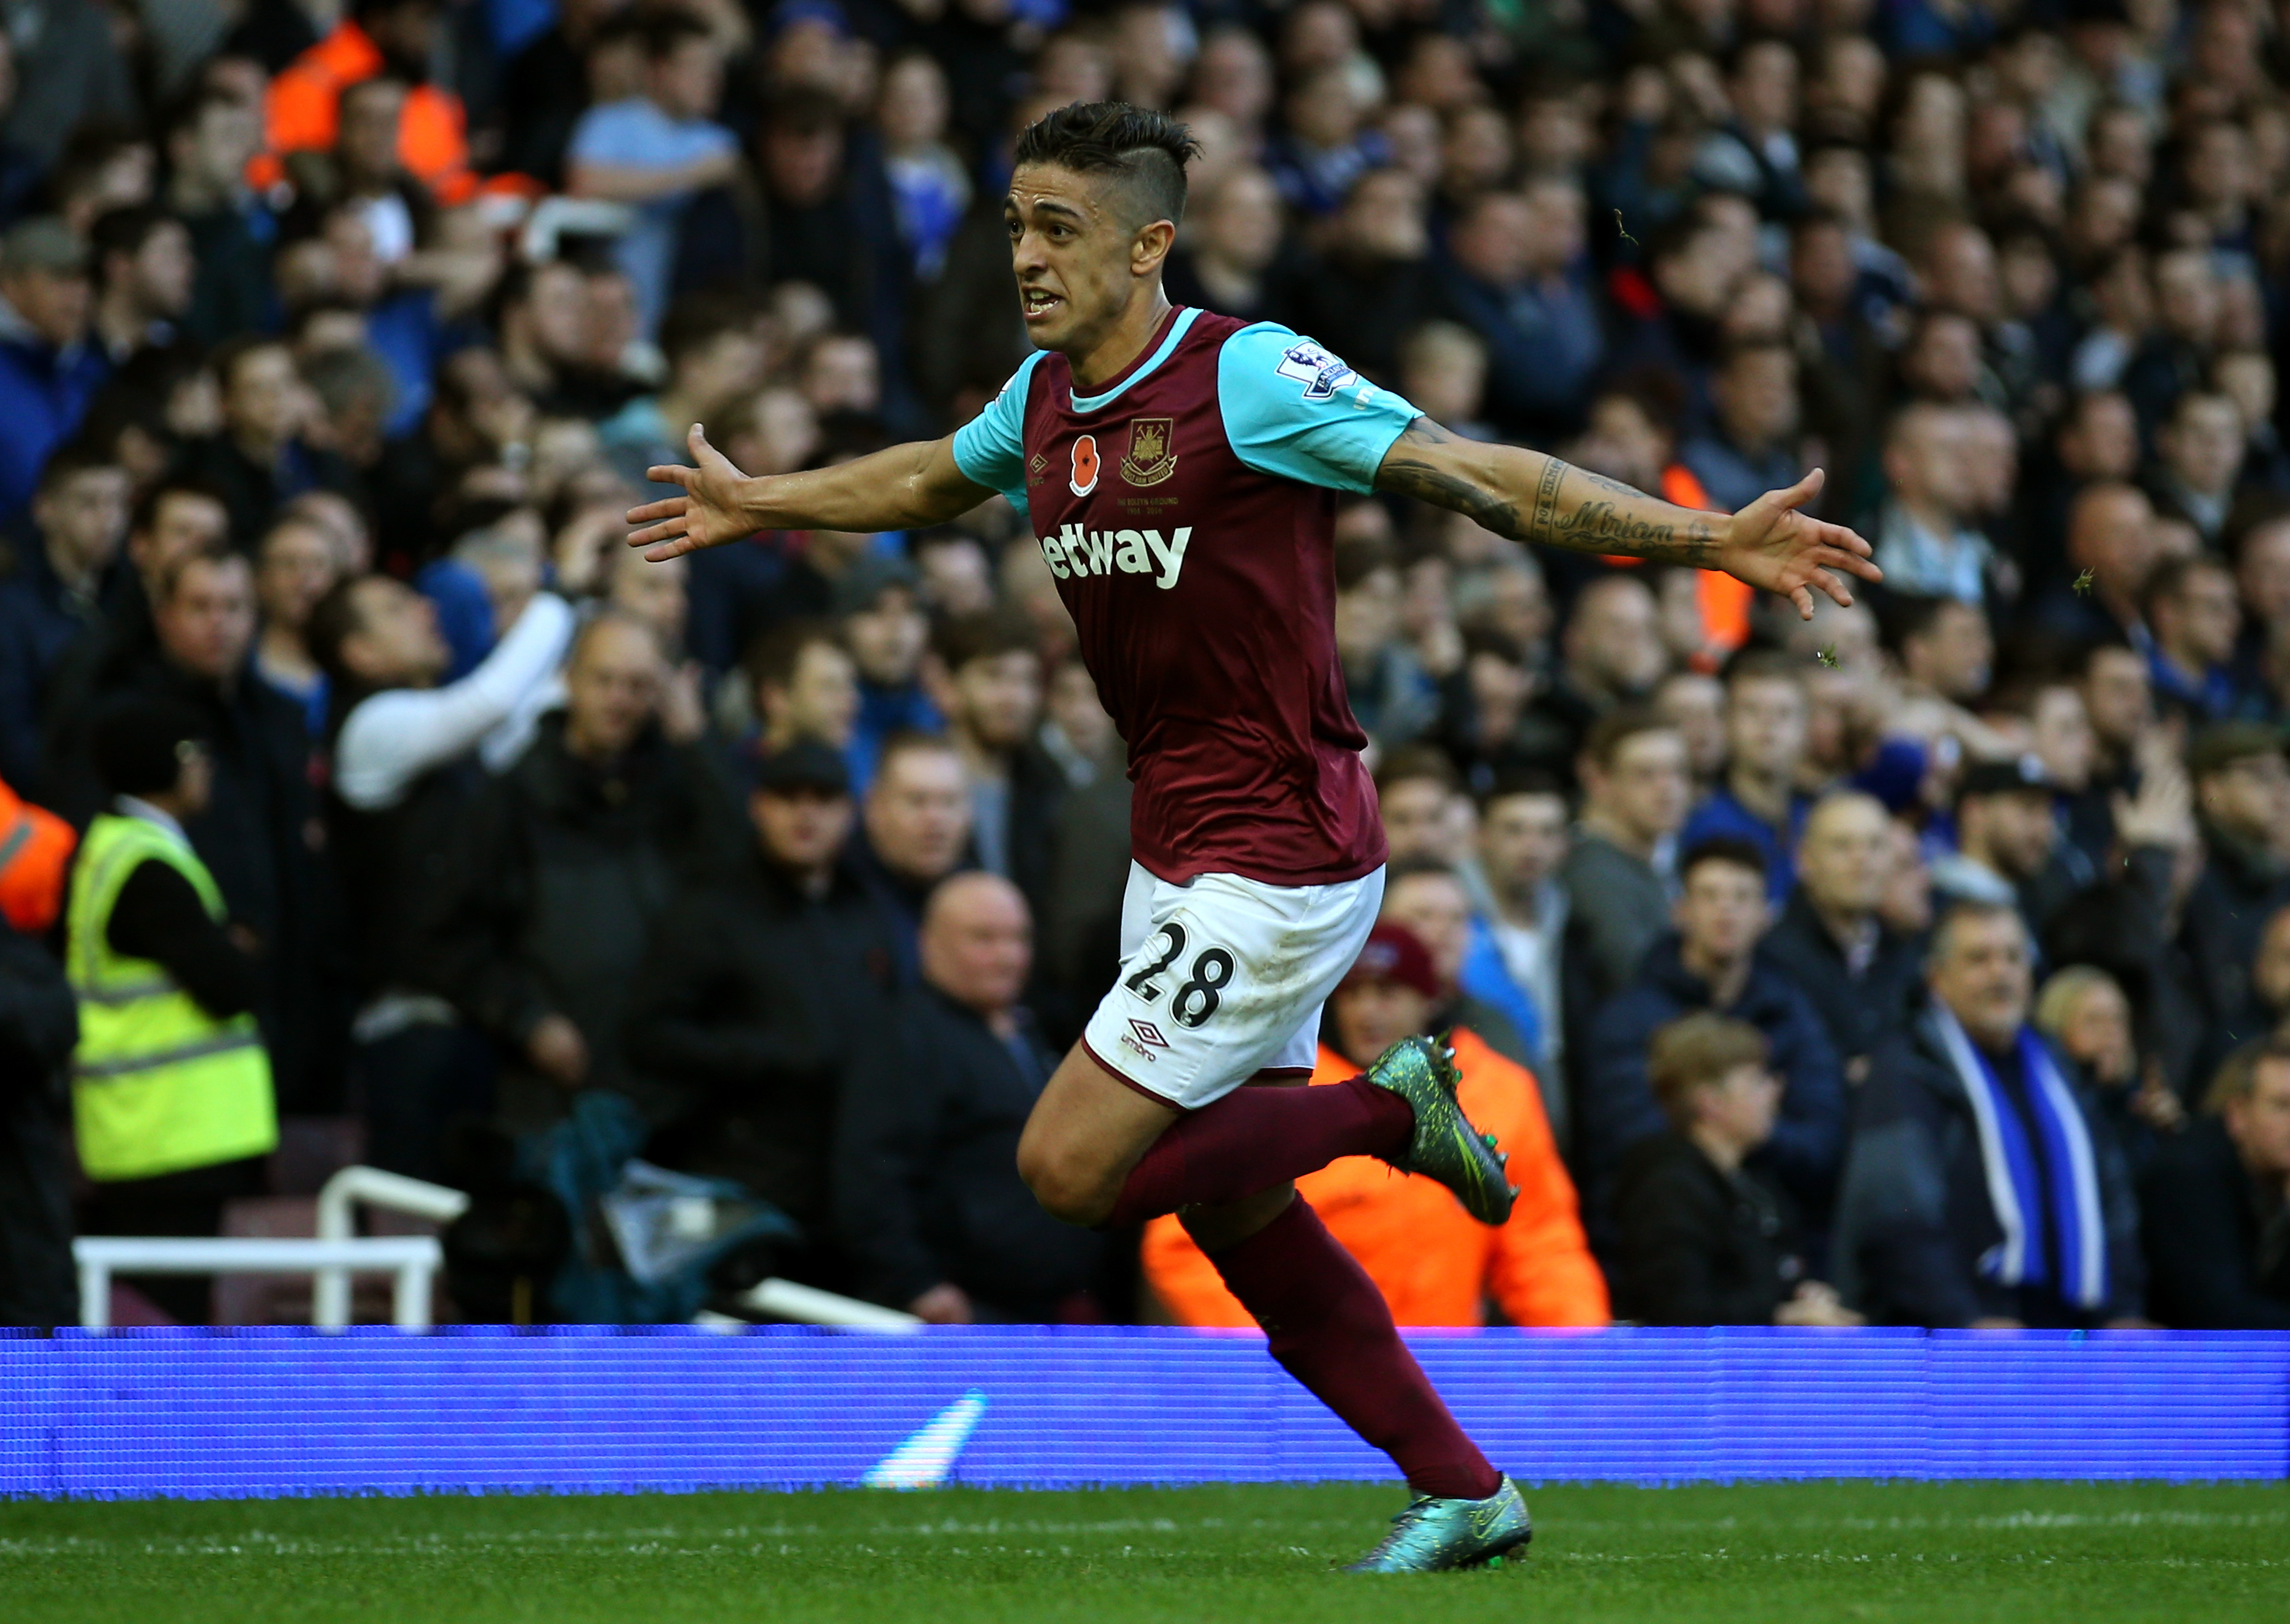 Lanzini has been an under-the-radar stud for the Hammers recently.